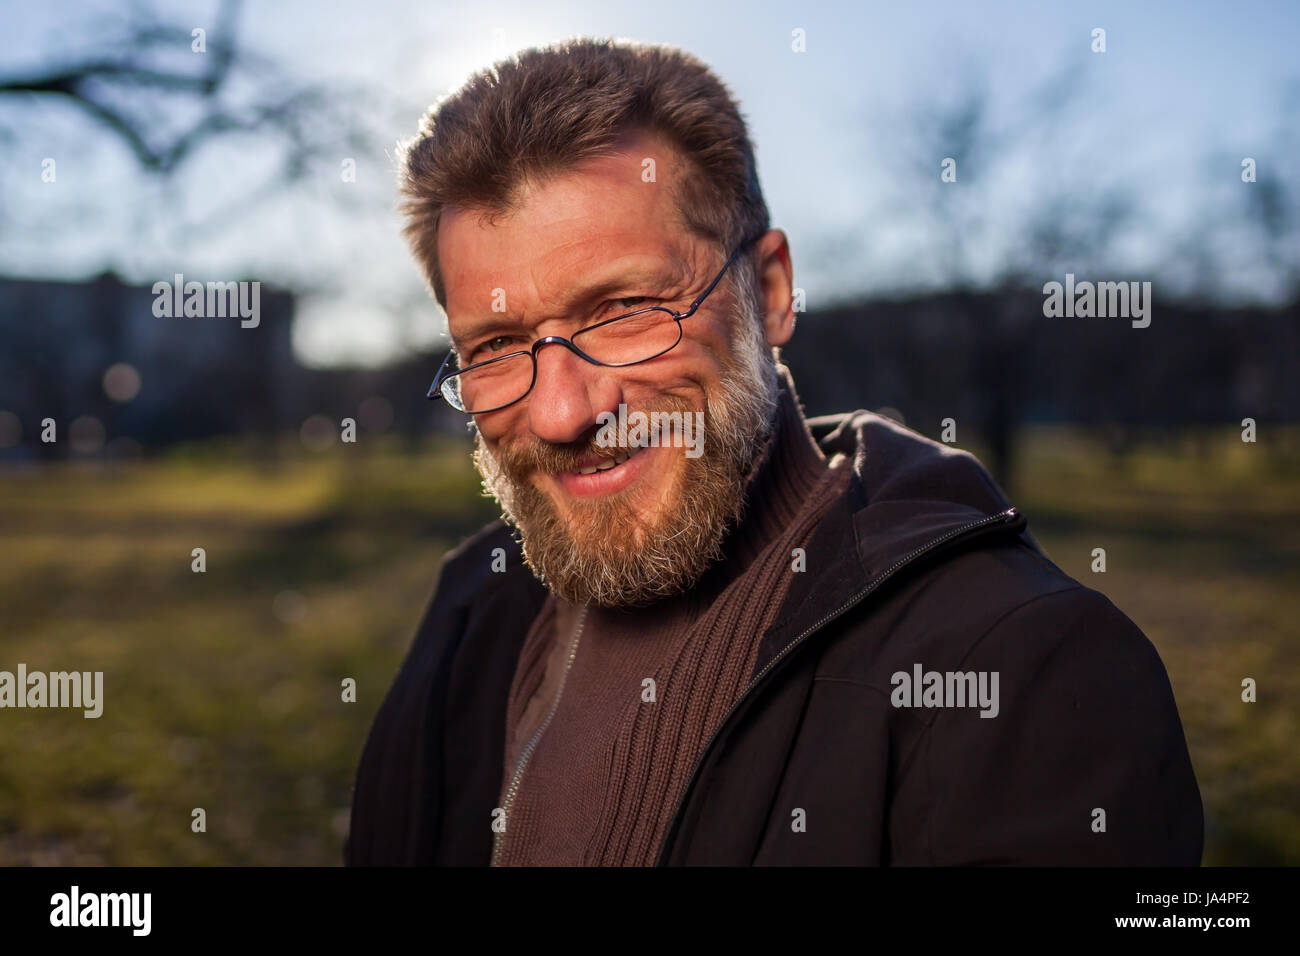 Portrait of a mature man in glasses on a background of nature. - Stock Image